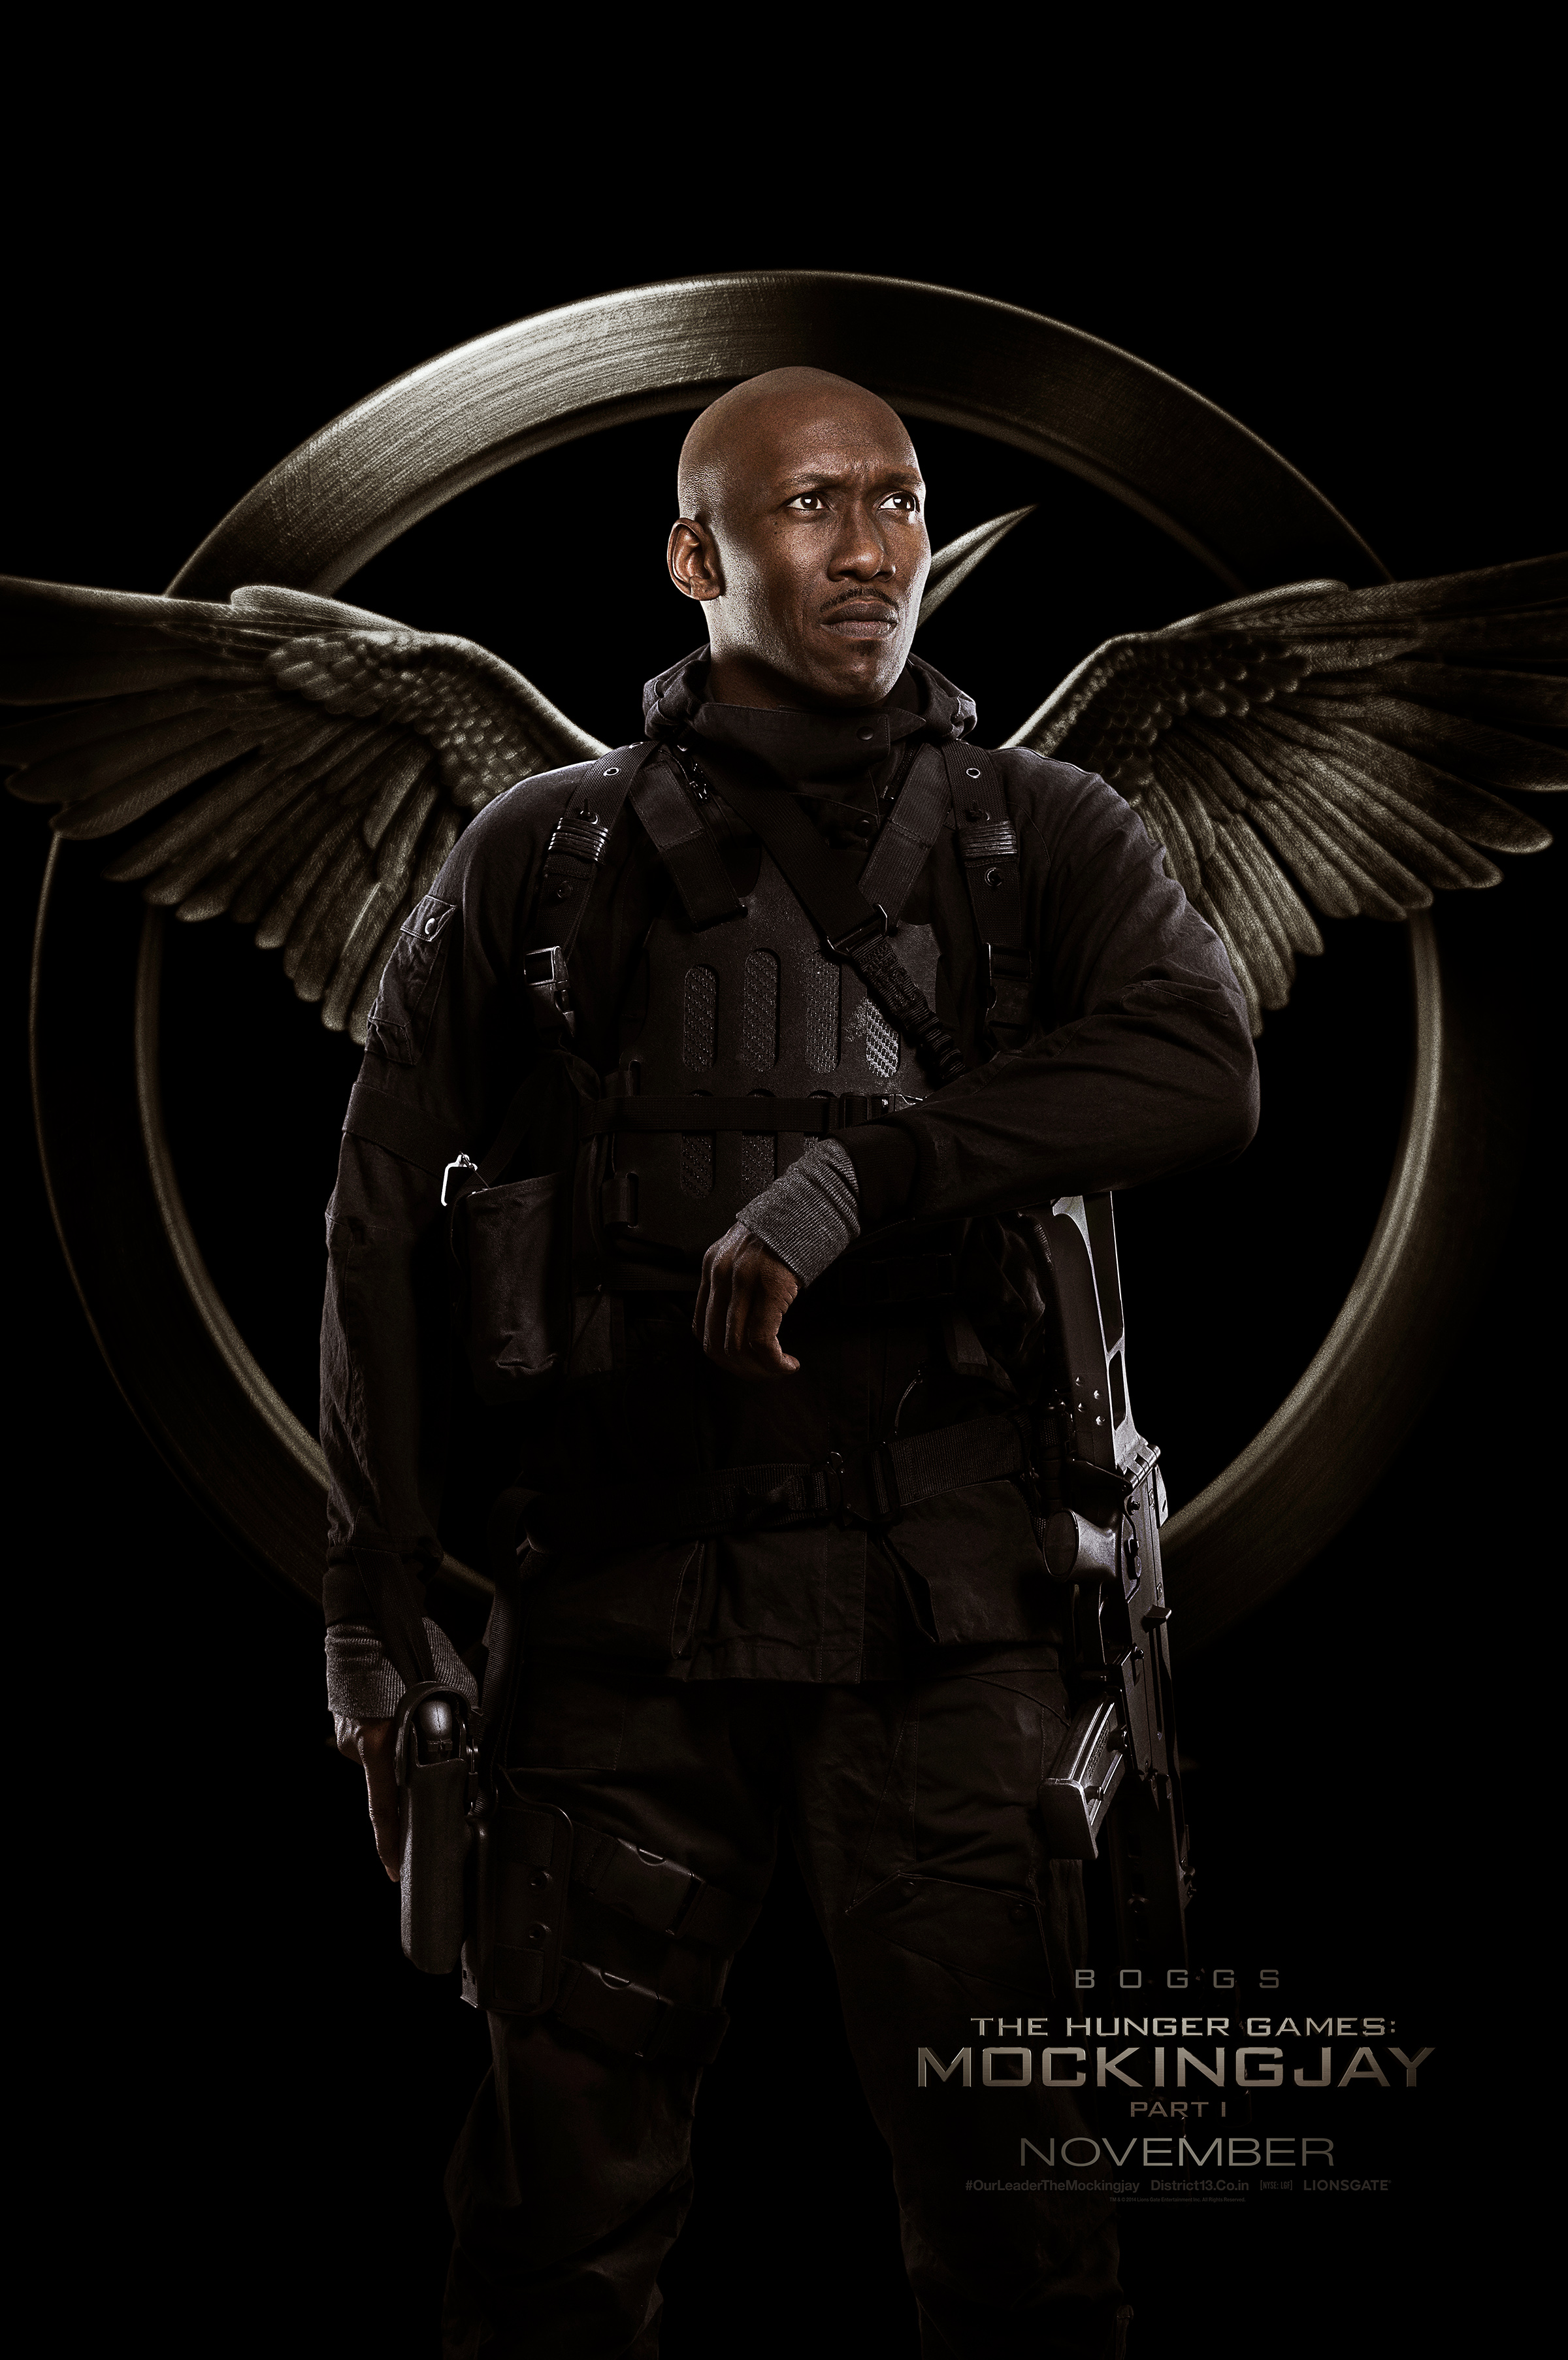 Rebels Posters The Hunger Games: Mockingjay - Part 1